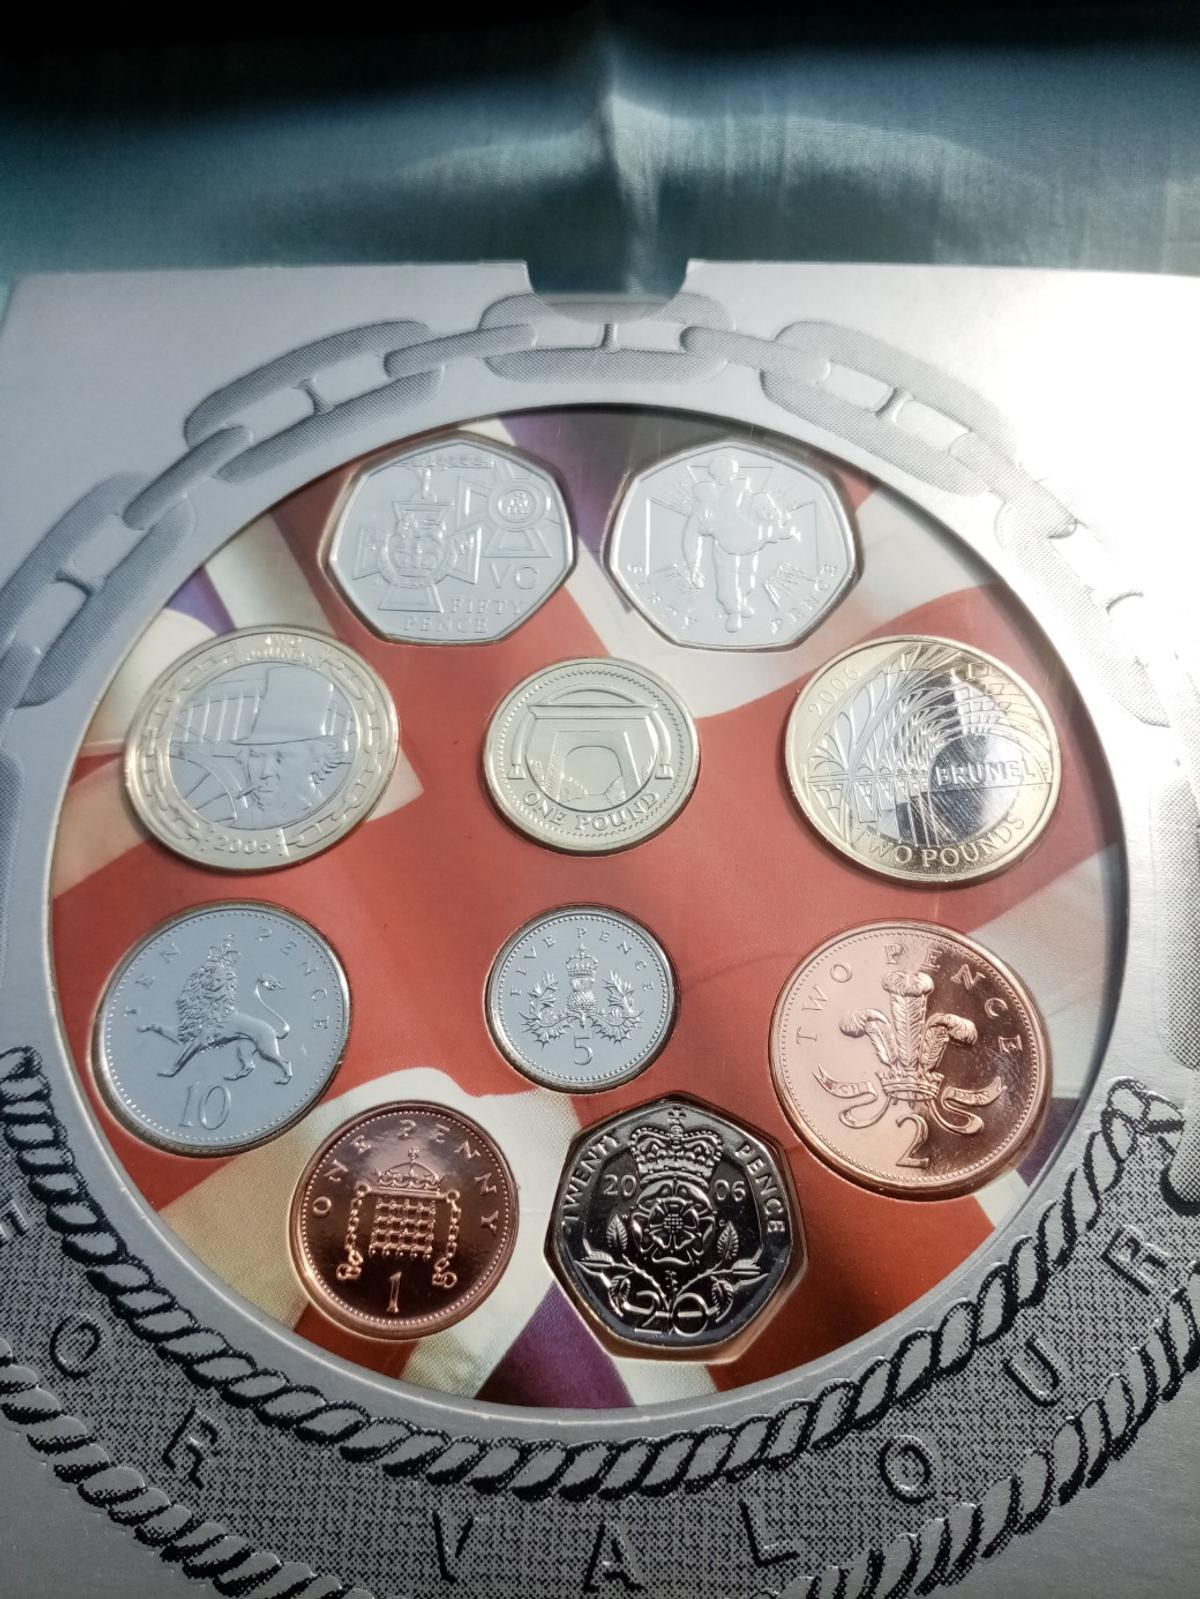 A beautiful unc royal mint 2006 coin collection in sealed packaging in brilliant uncirculated condition and never been out the packaging. Postage will be added at £2 and its first class signed for.